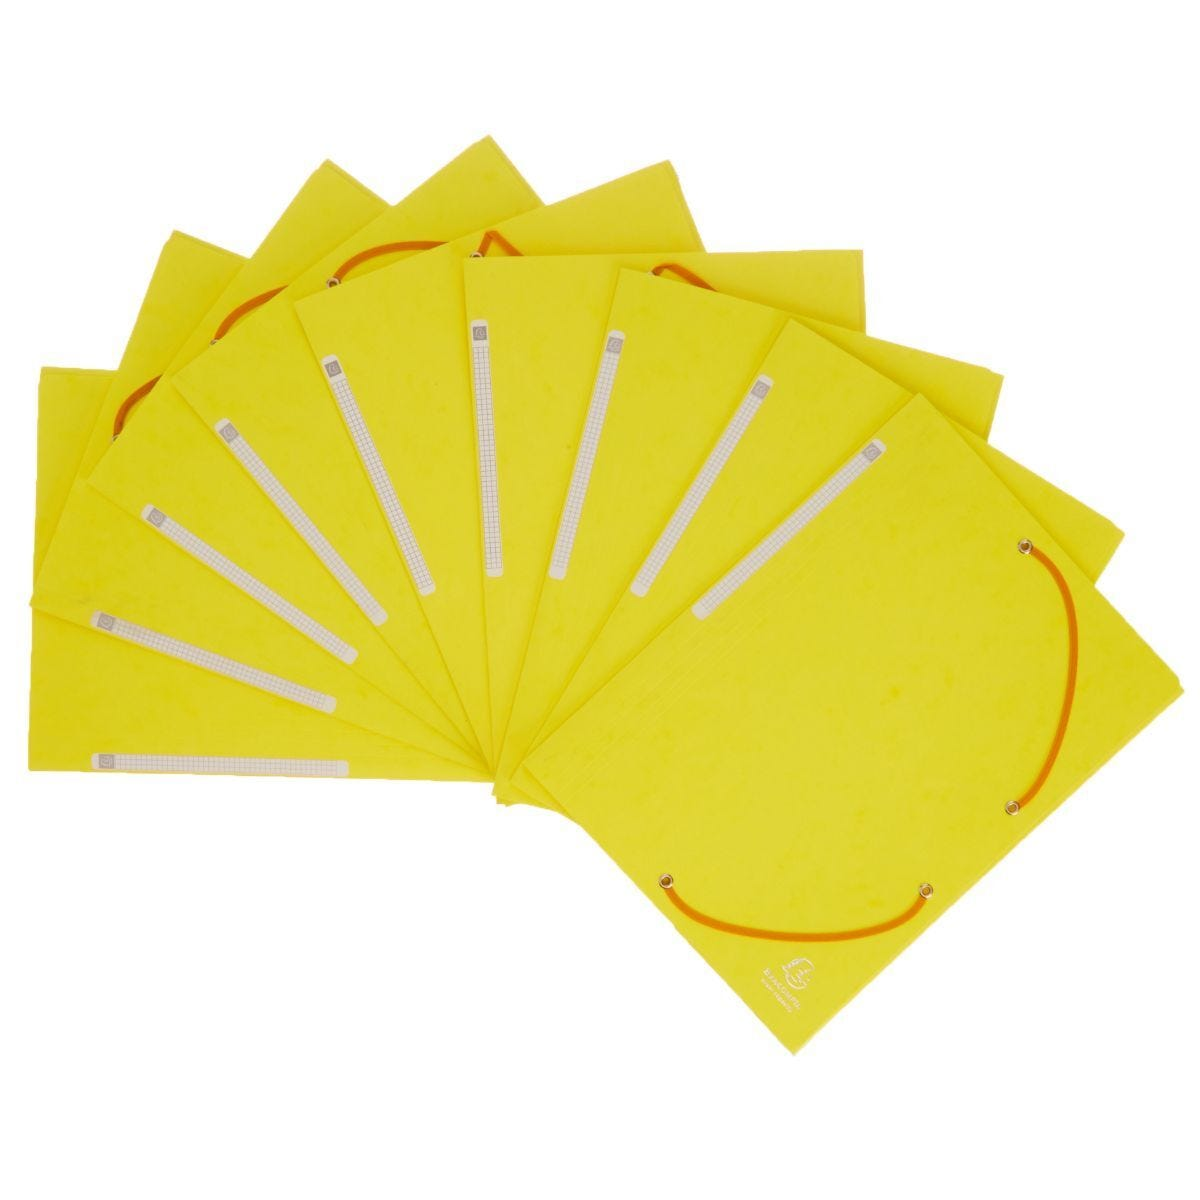 Exacompta Portfolio Folder A4 Elasticated Pack of 10 Lemon